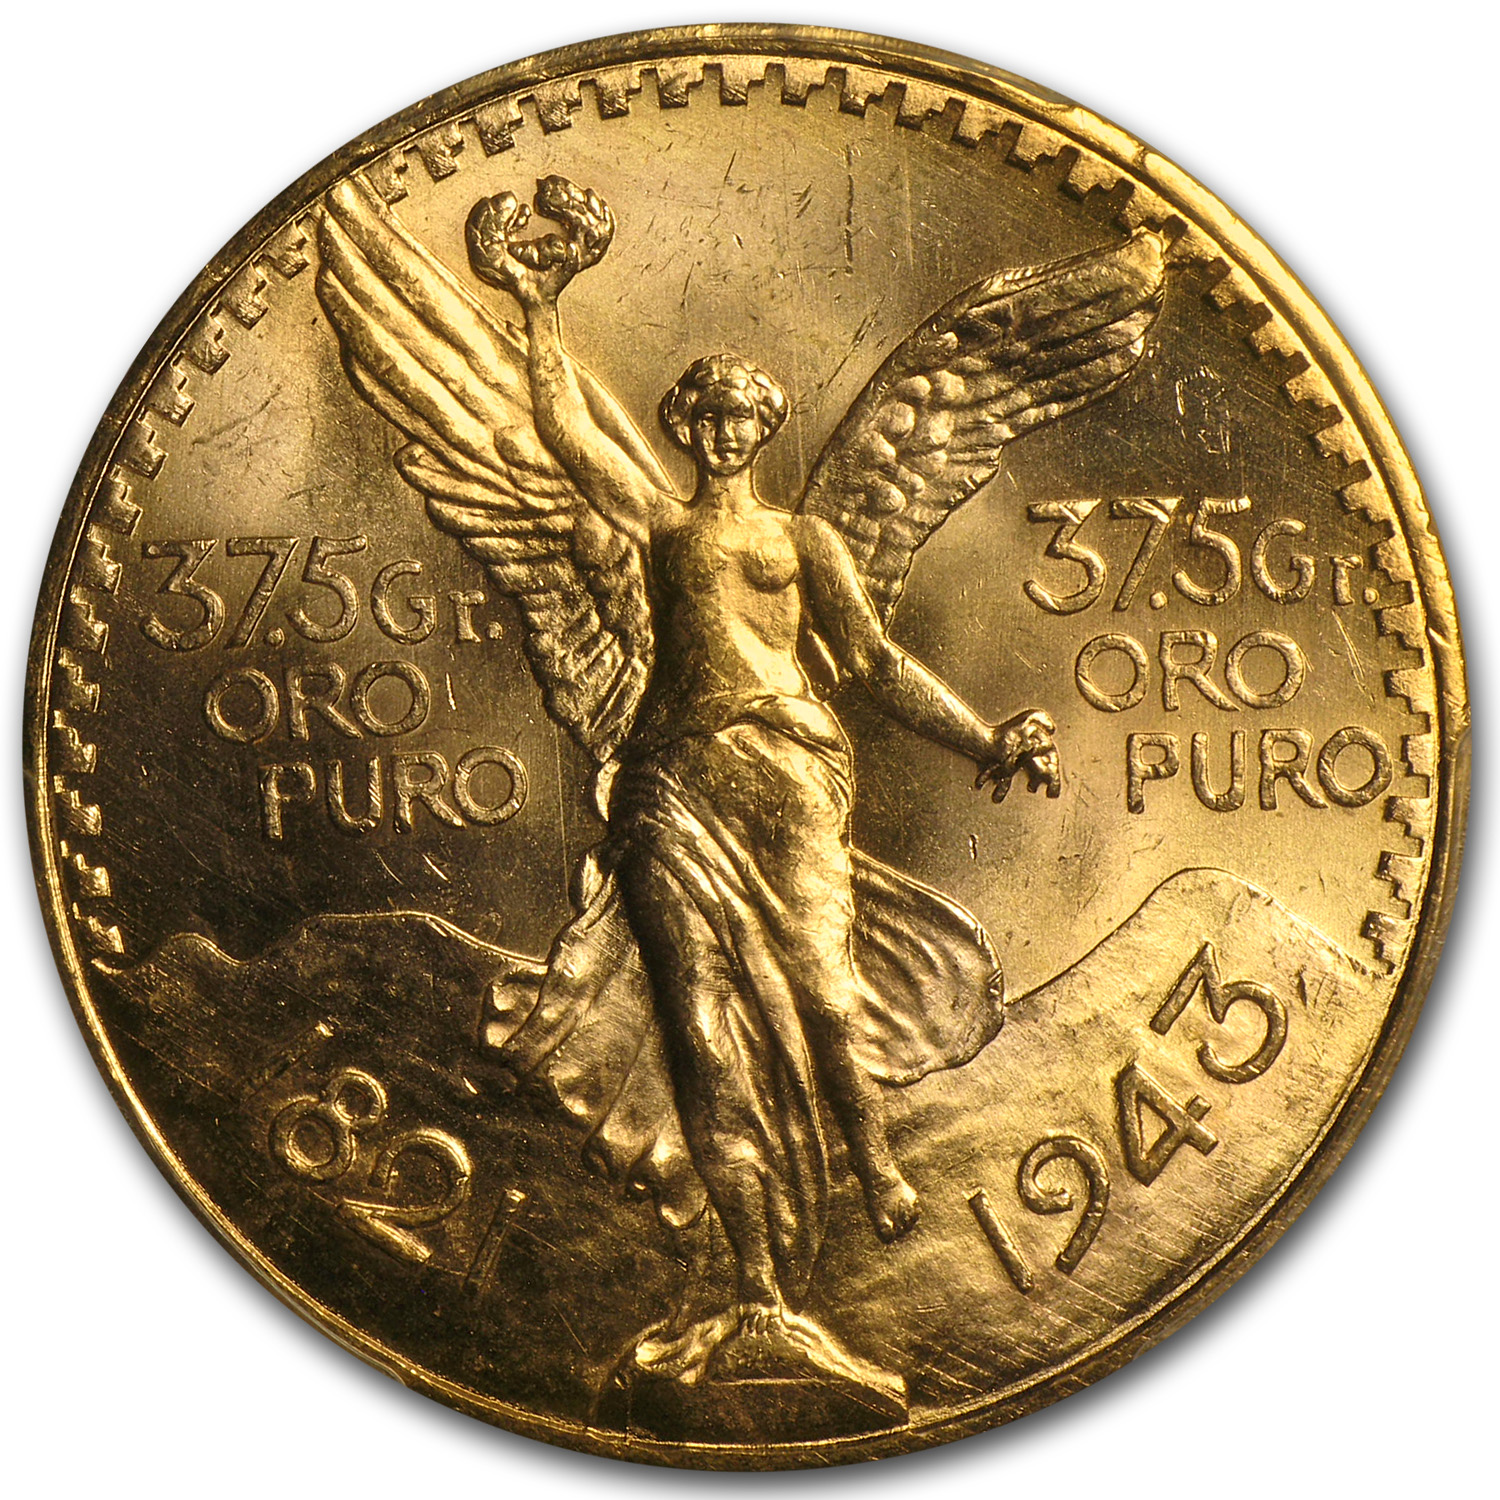 Mexico 1943 50 Pesos Gold Coin - MS-64+ PCGS (Secure Plus!)